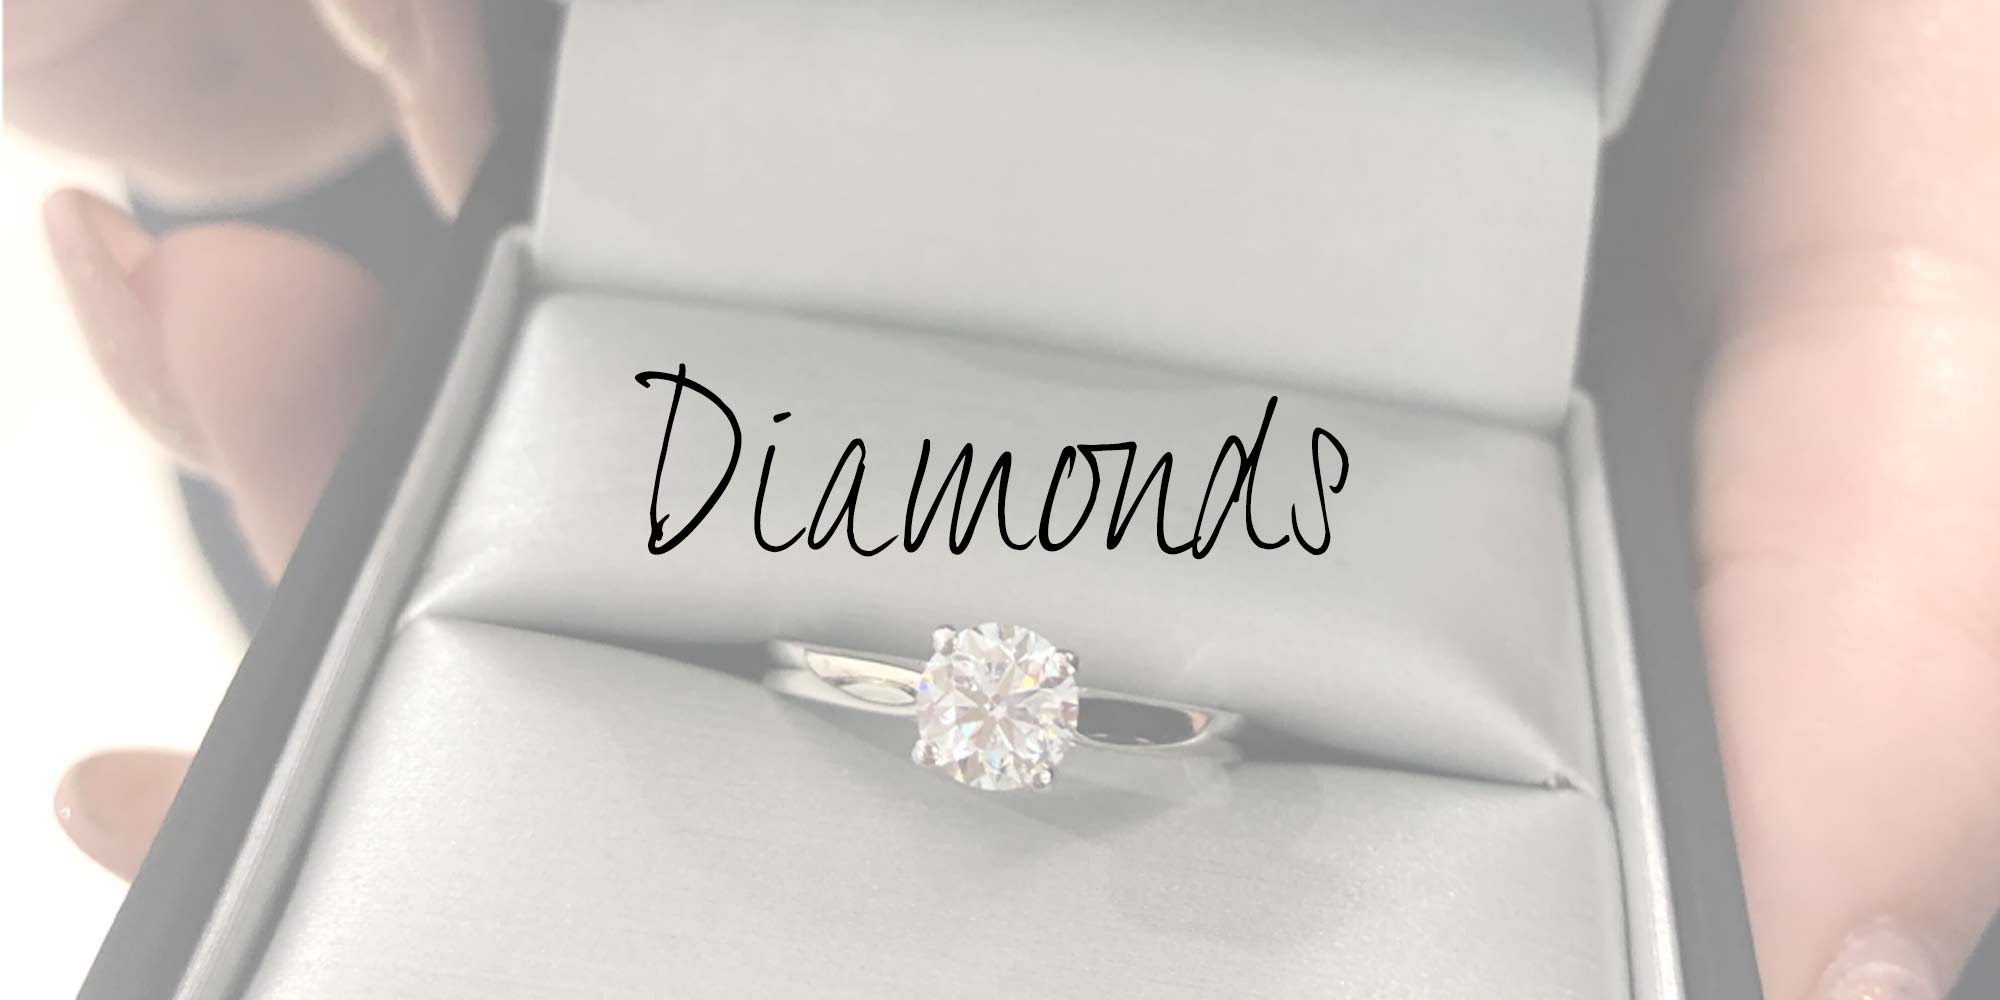 Diamonds to purchase online, Diamonds, Drakes Jewellers, Plymouth, Diamond Specialists, Buy Diamonds online